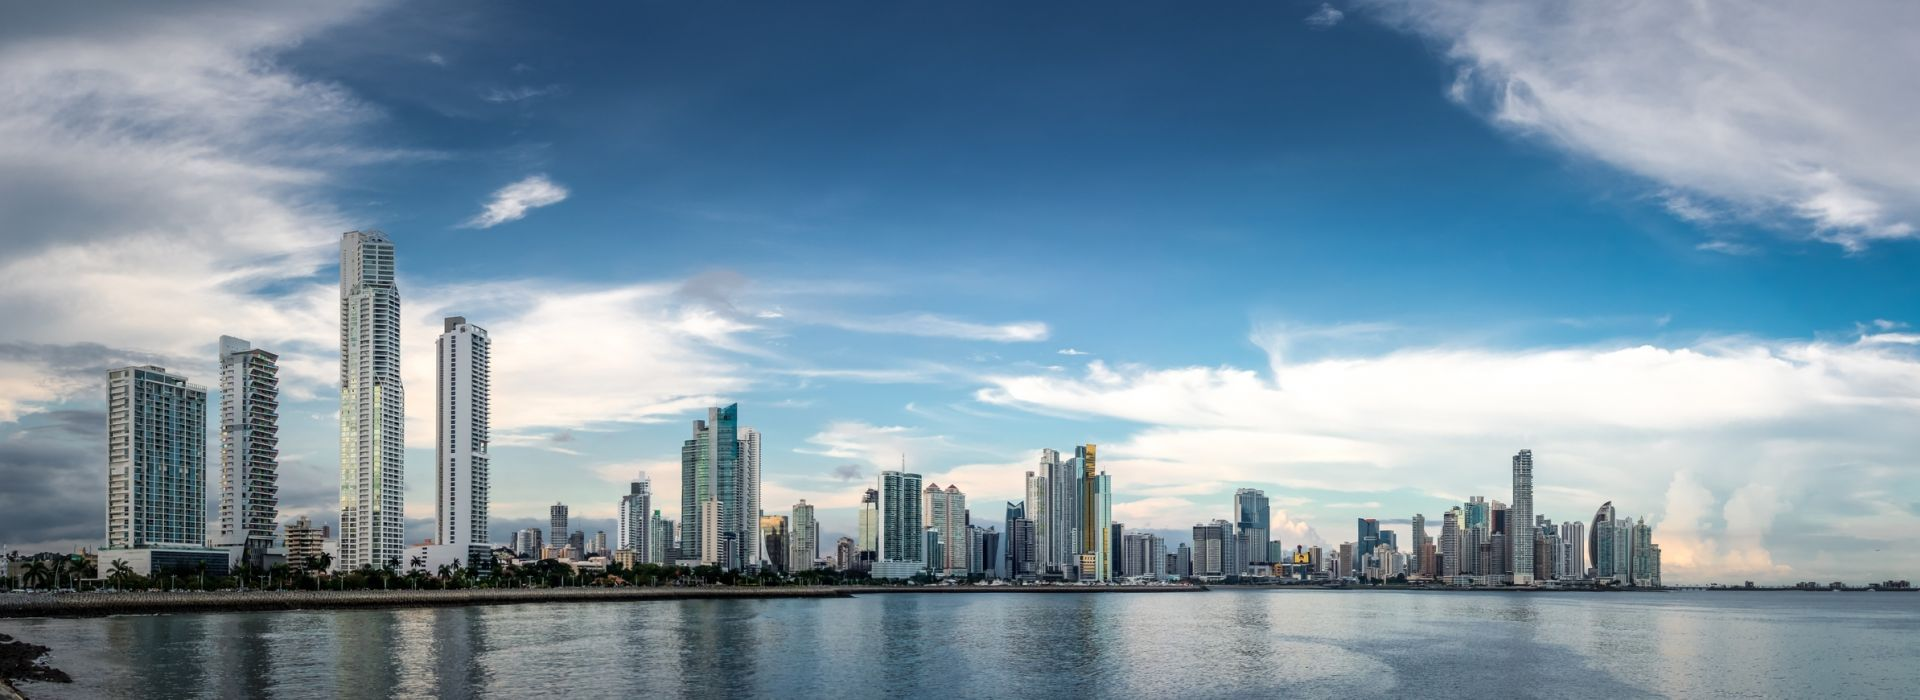 Air tours, road trips and transfers in Panama